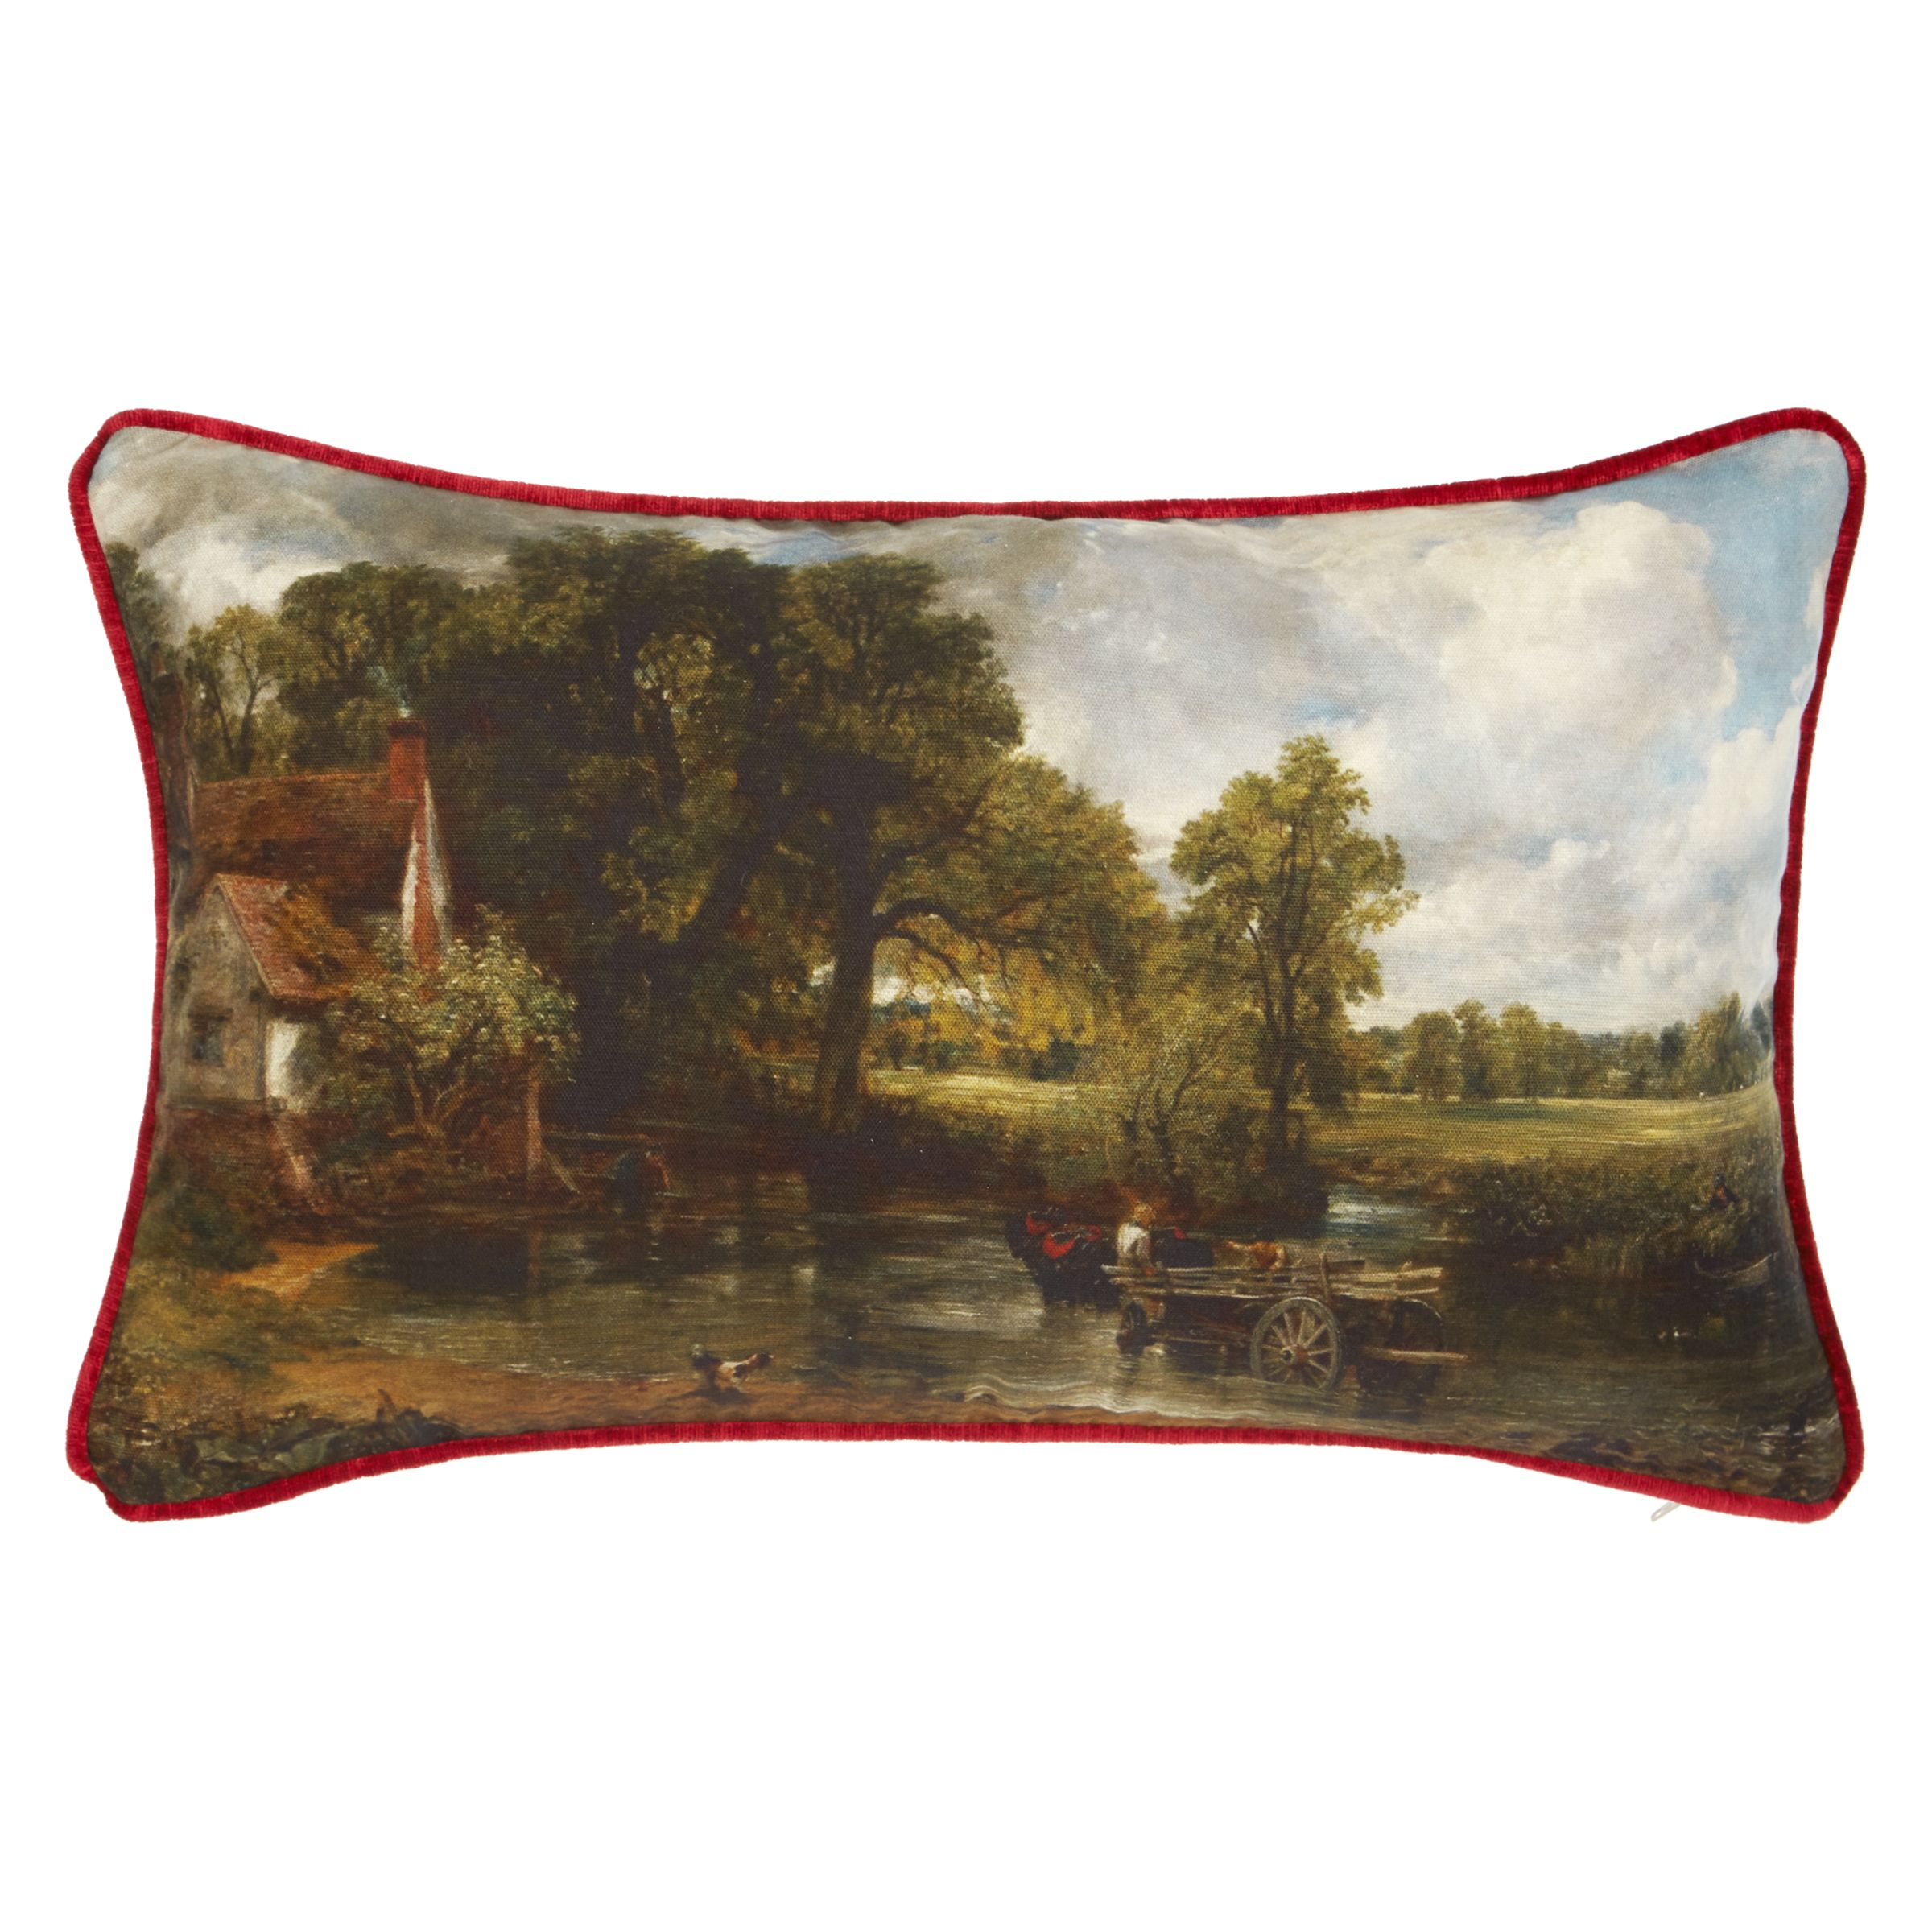 Andrew Martin Andrew Martin National Gallery Constable's The Hay Wain Cushion